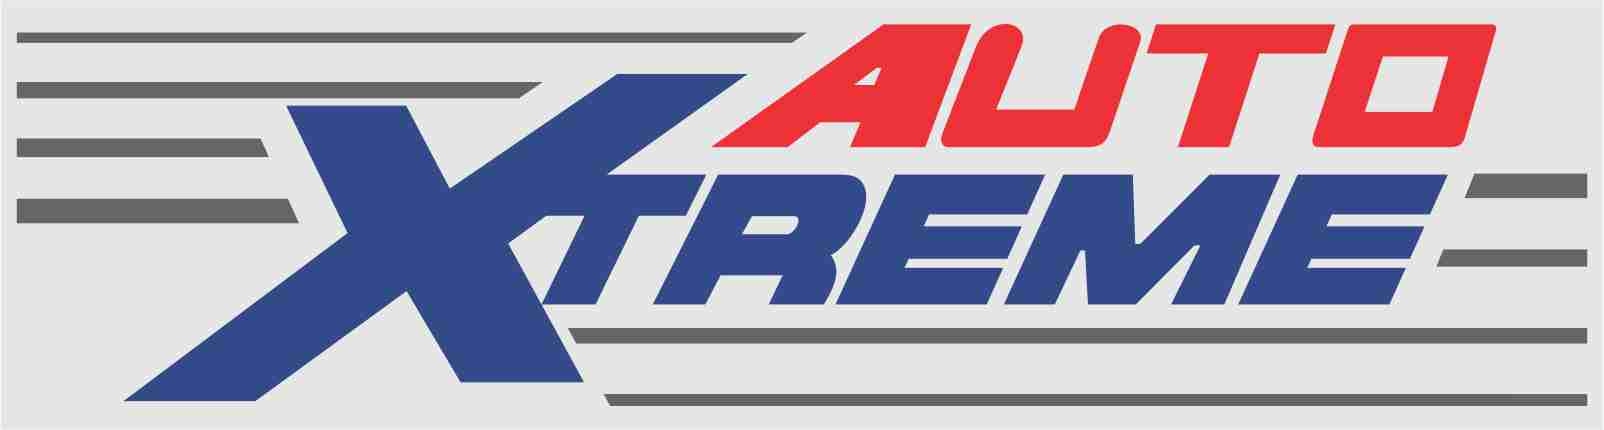 Find Auto Xtreme's adverts listed on Junk Mail